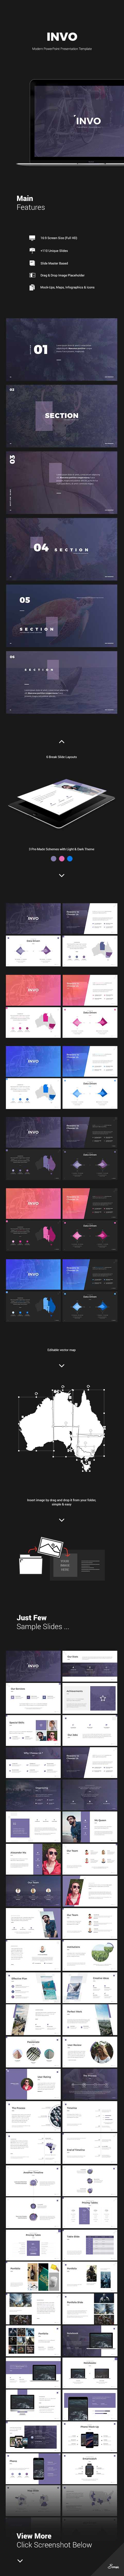 Invo - Modern PowerPoint Template - Business PowerPoint Templates